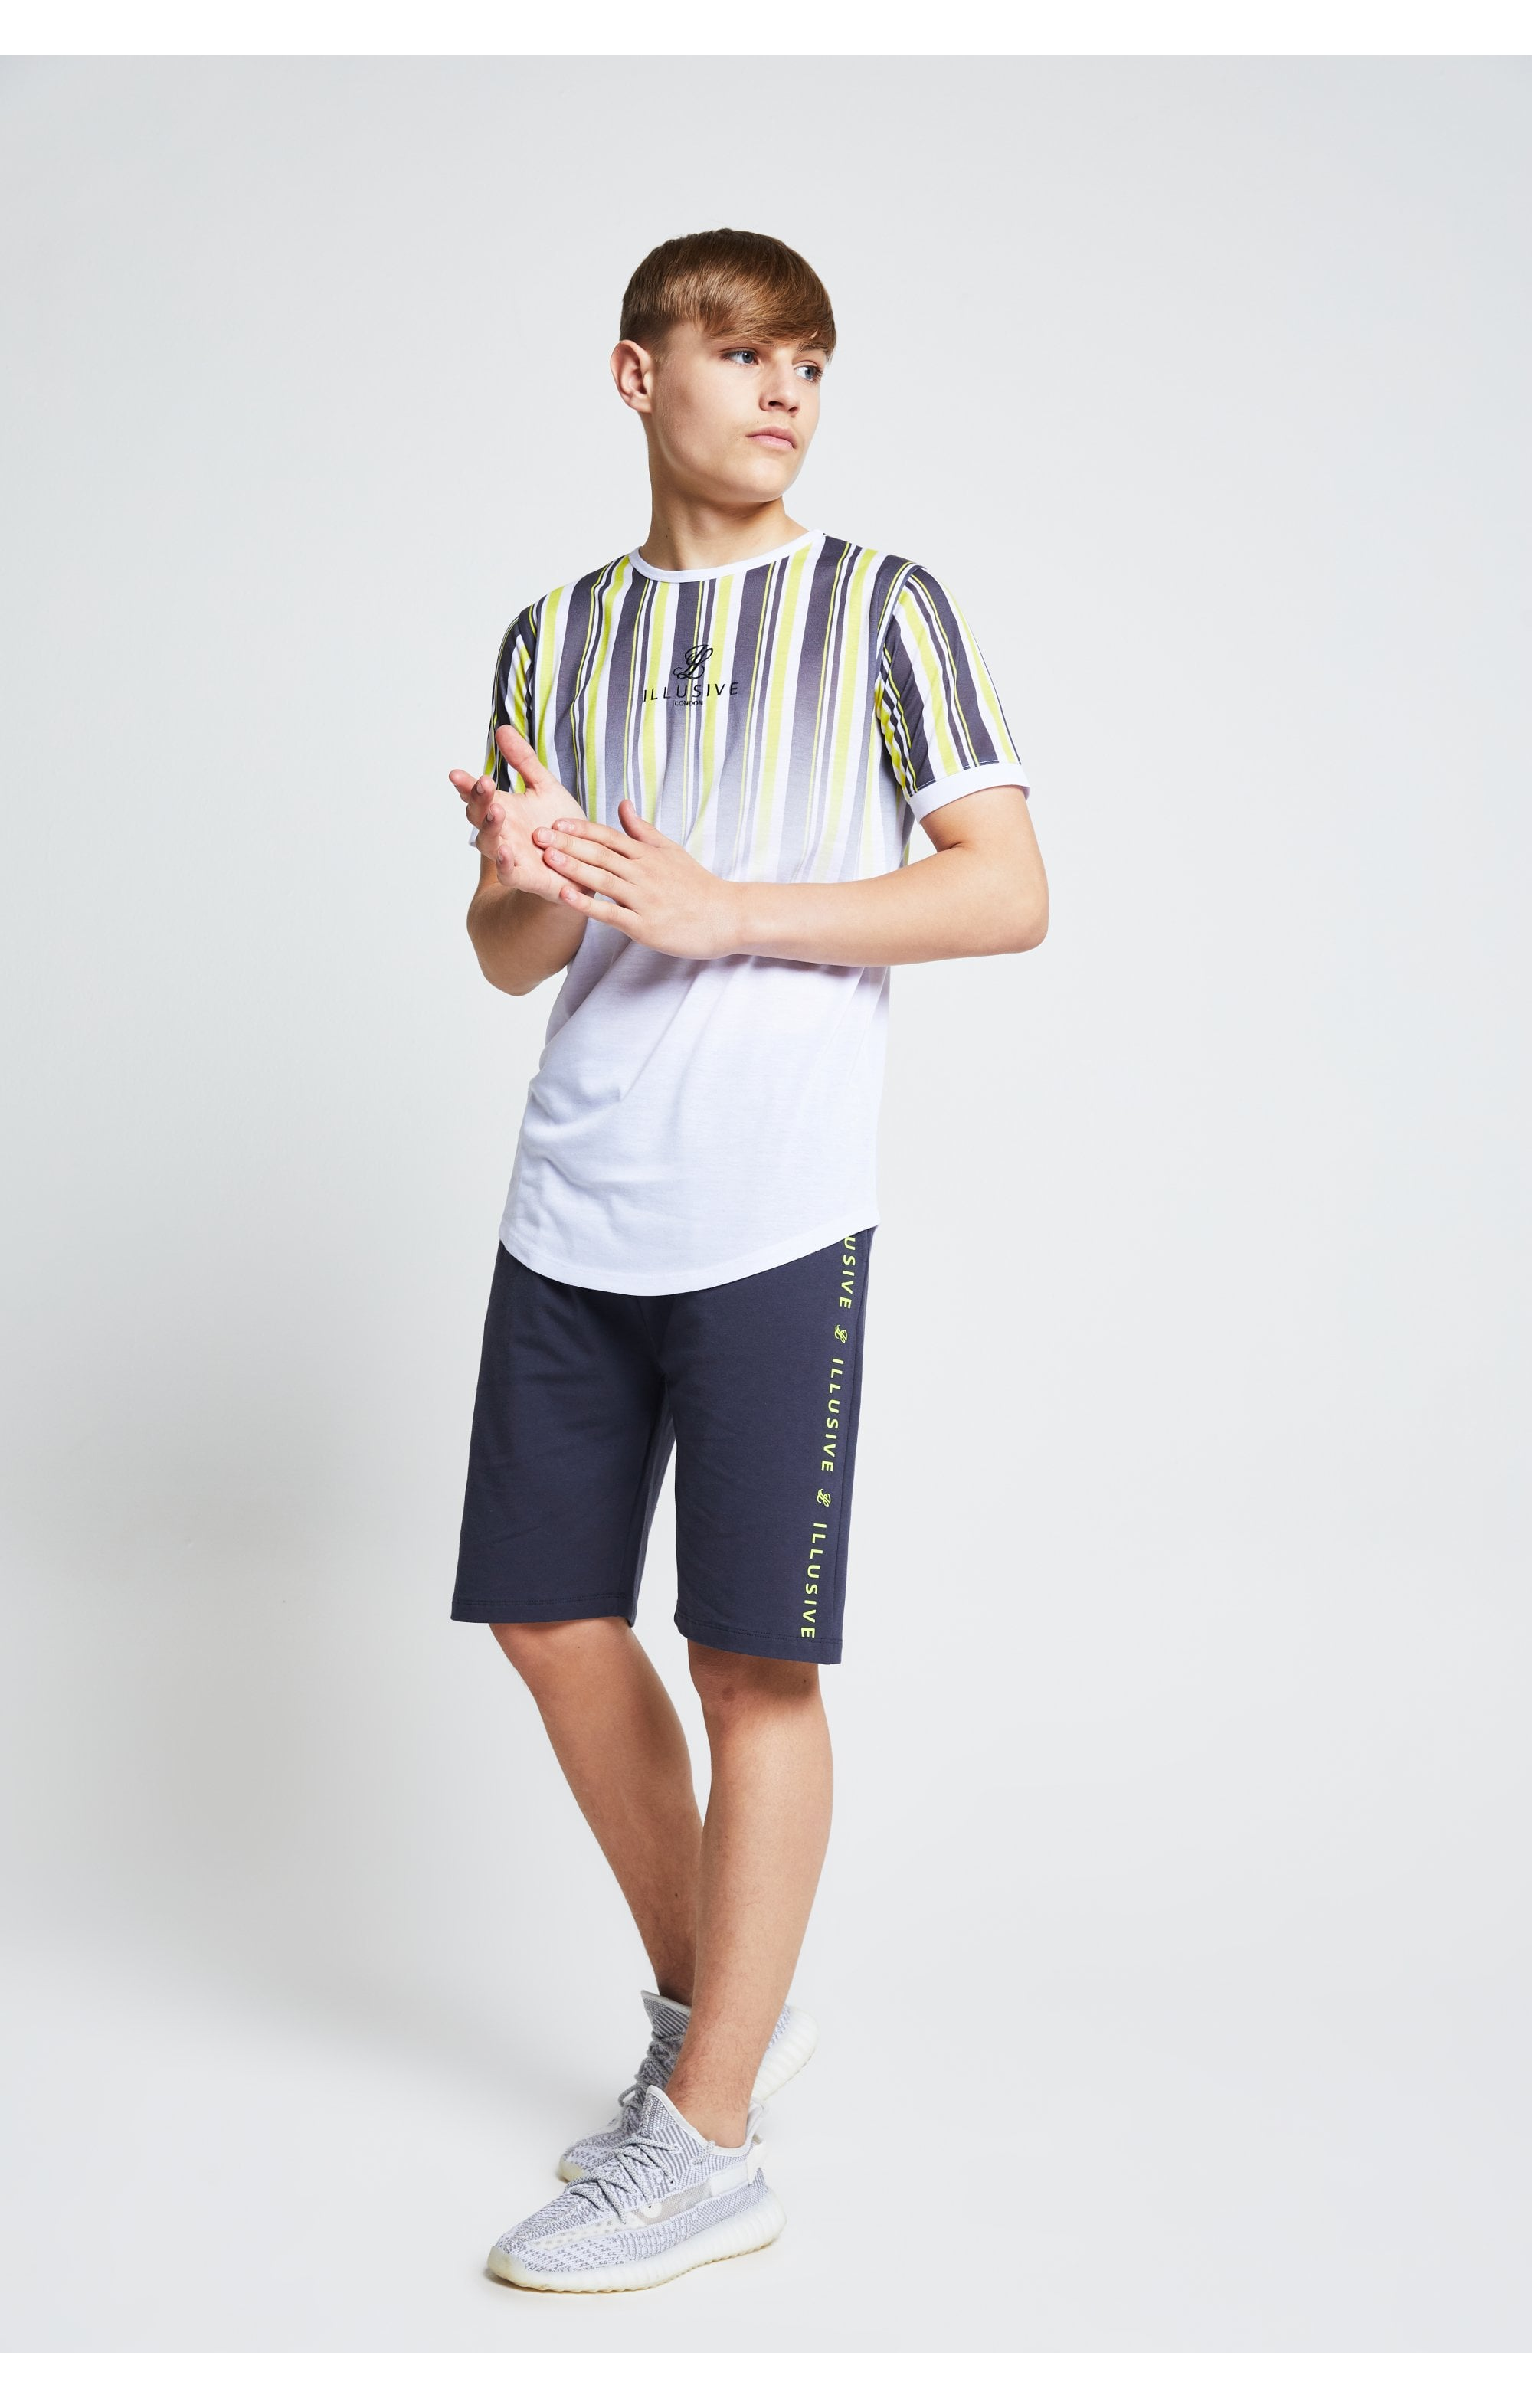 Illusive London Jersey Shorts - Grey Neon Yellow (4)